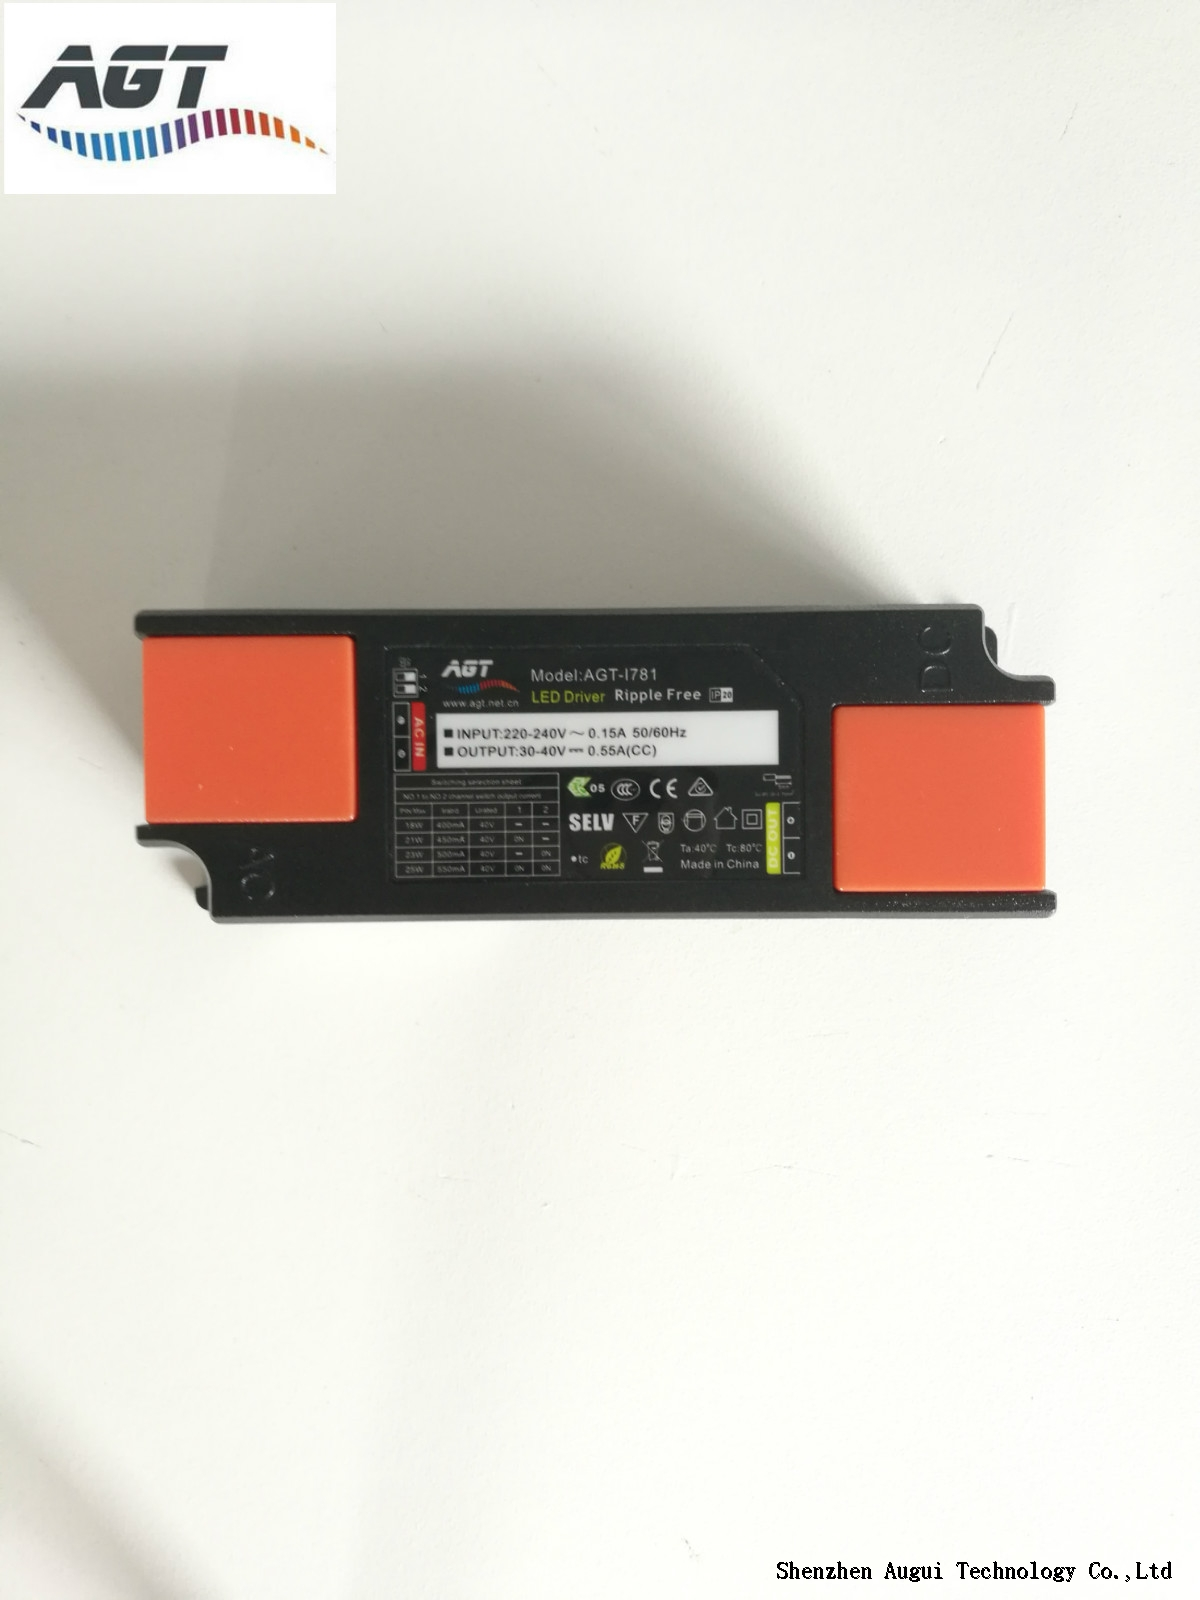 10-15W Small size flicker free high efficiency led driver with 5 years warranty